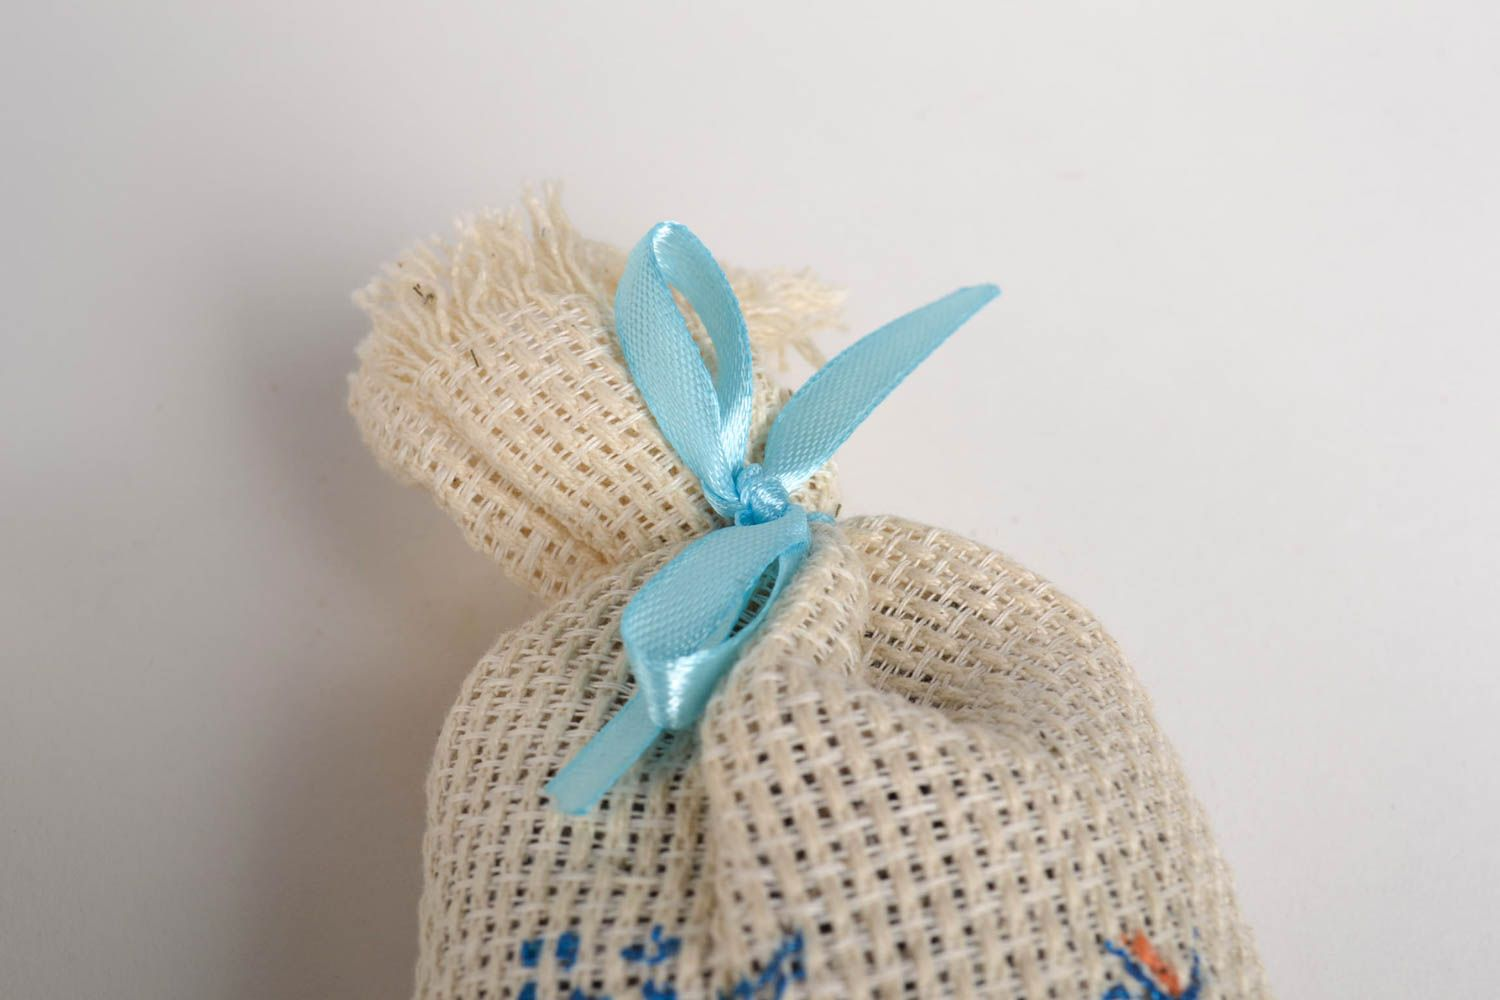 Handmade sachet bag with herbs home design aromatherapy at home small gifts photo 4